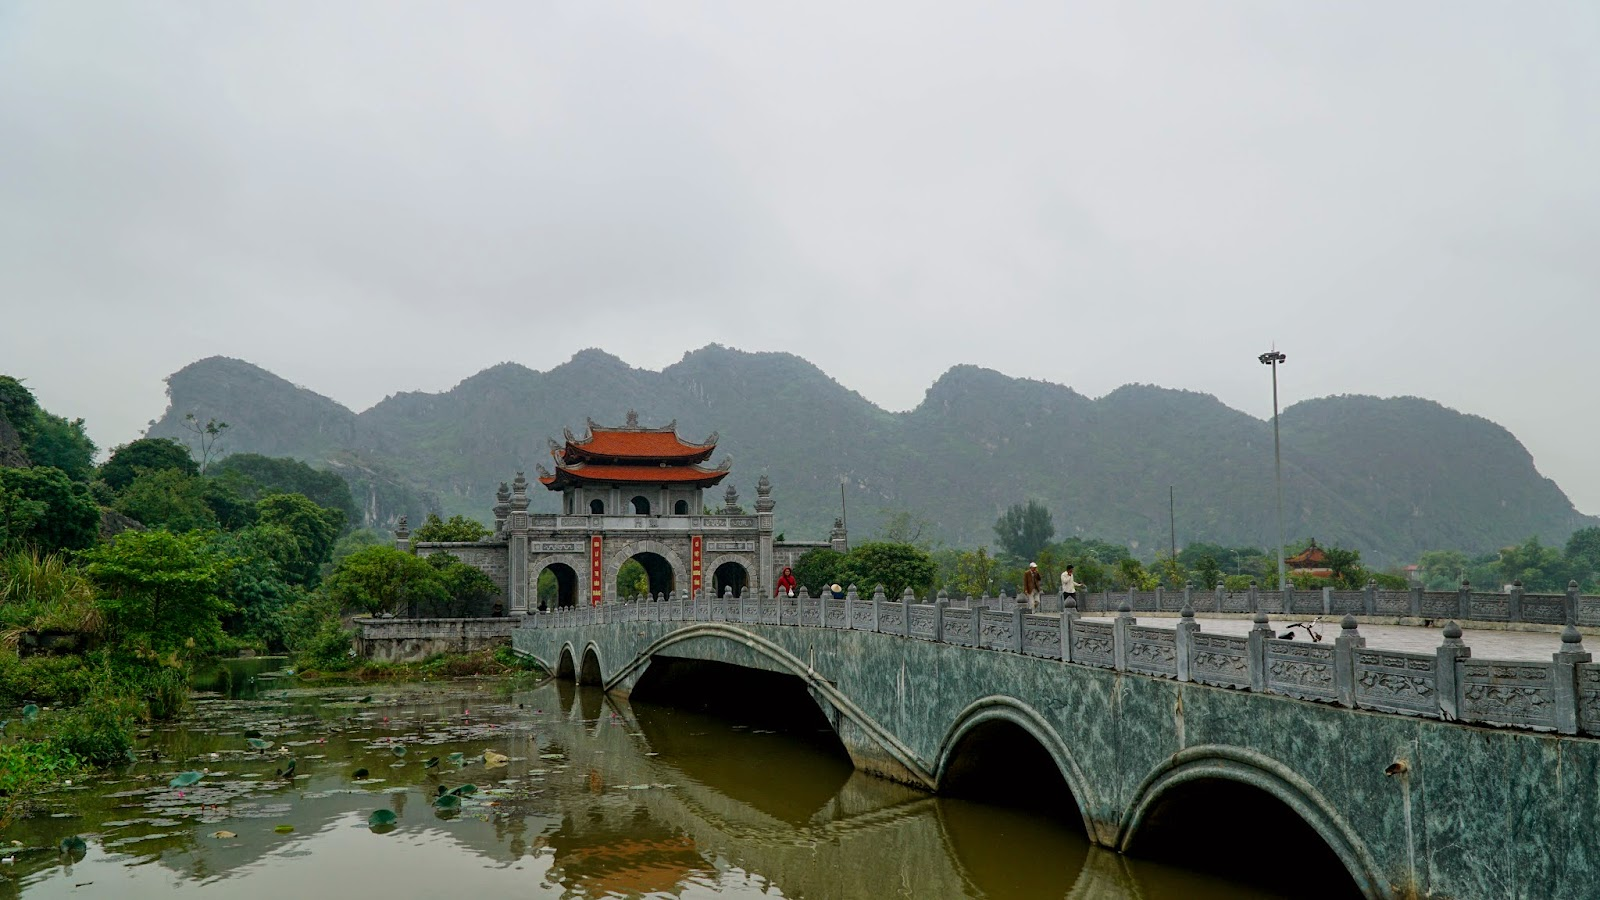 Hoa Lu, the ancient capital of Vietnam